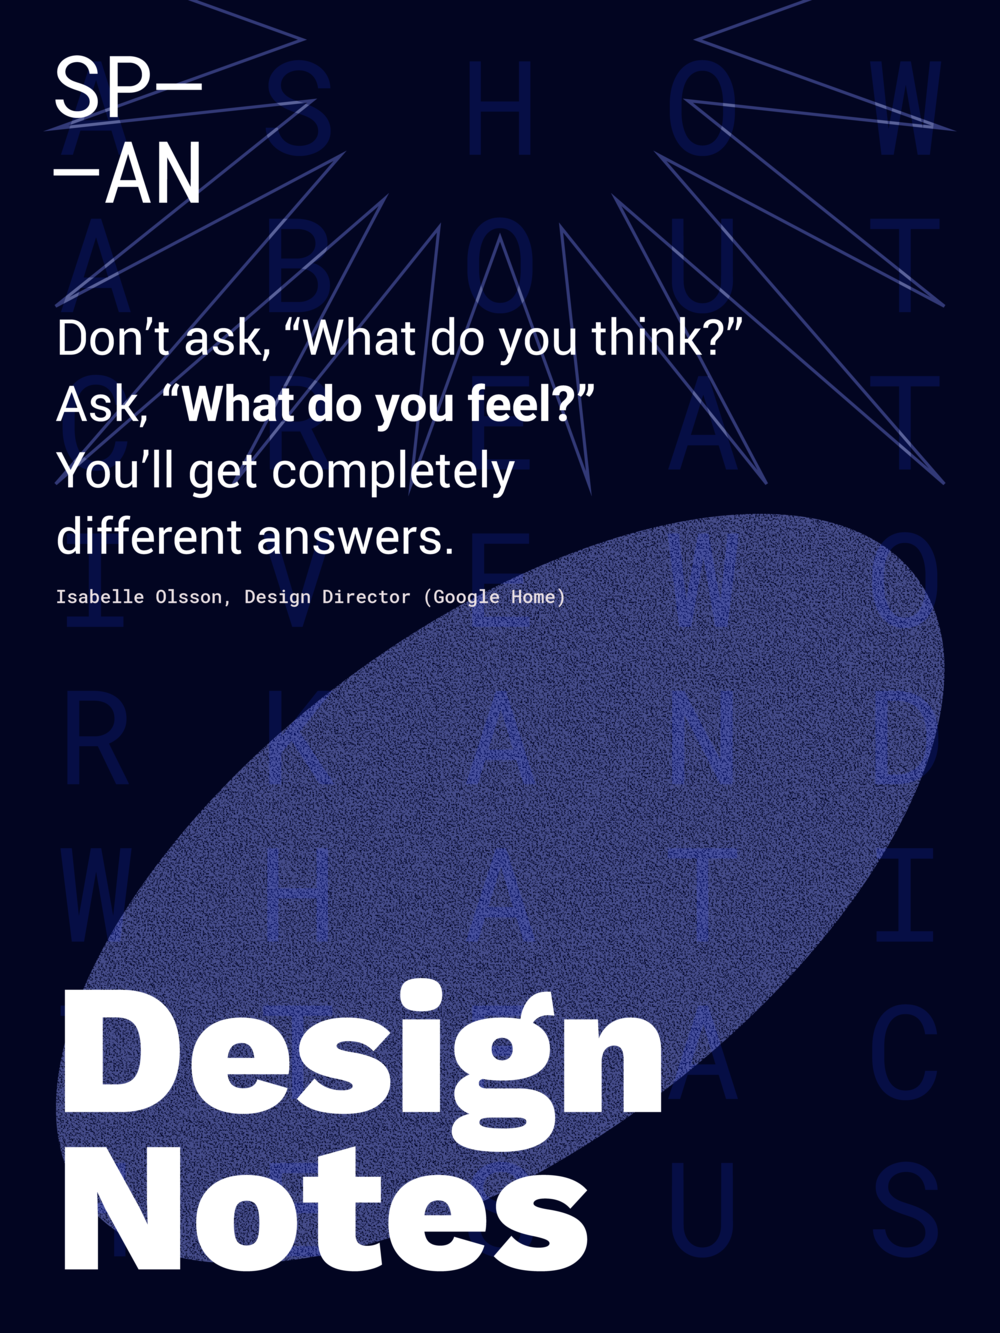 SPANxDesignNotes_Poster-Olsson.png